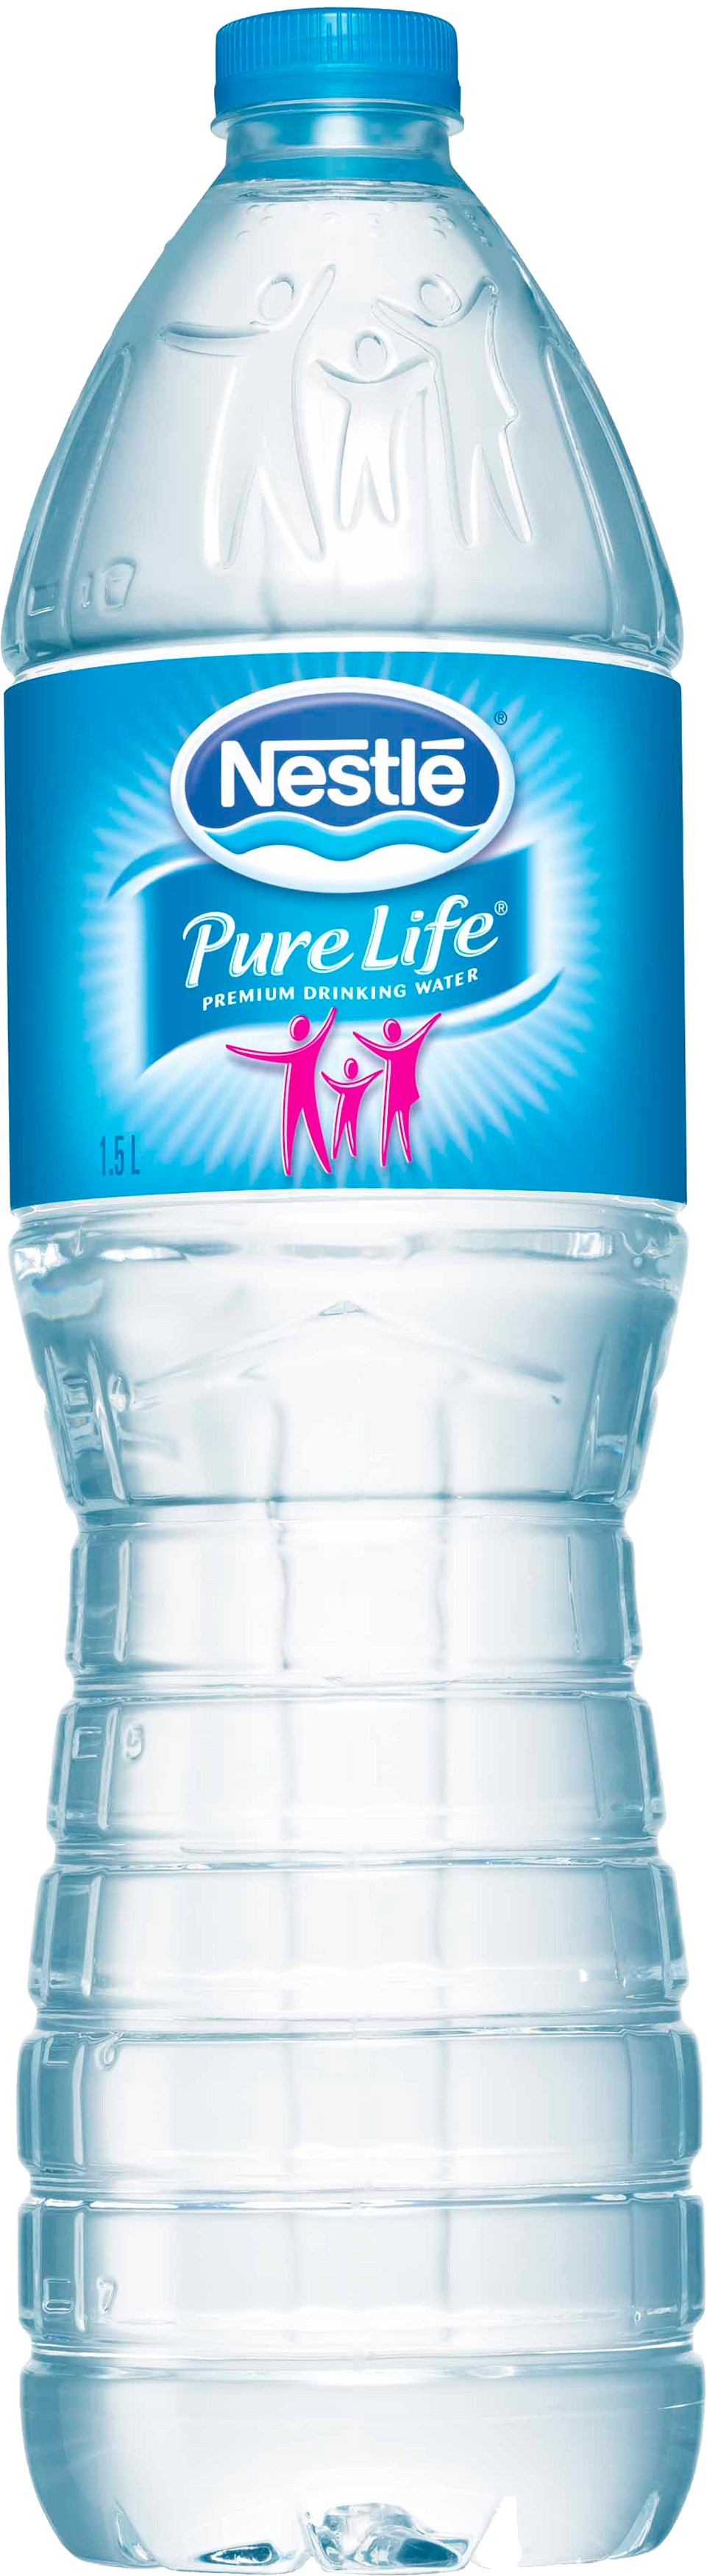 Bottle Of Water Png Best Pictures And Decription Imagedoc Org